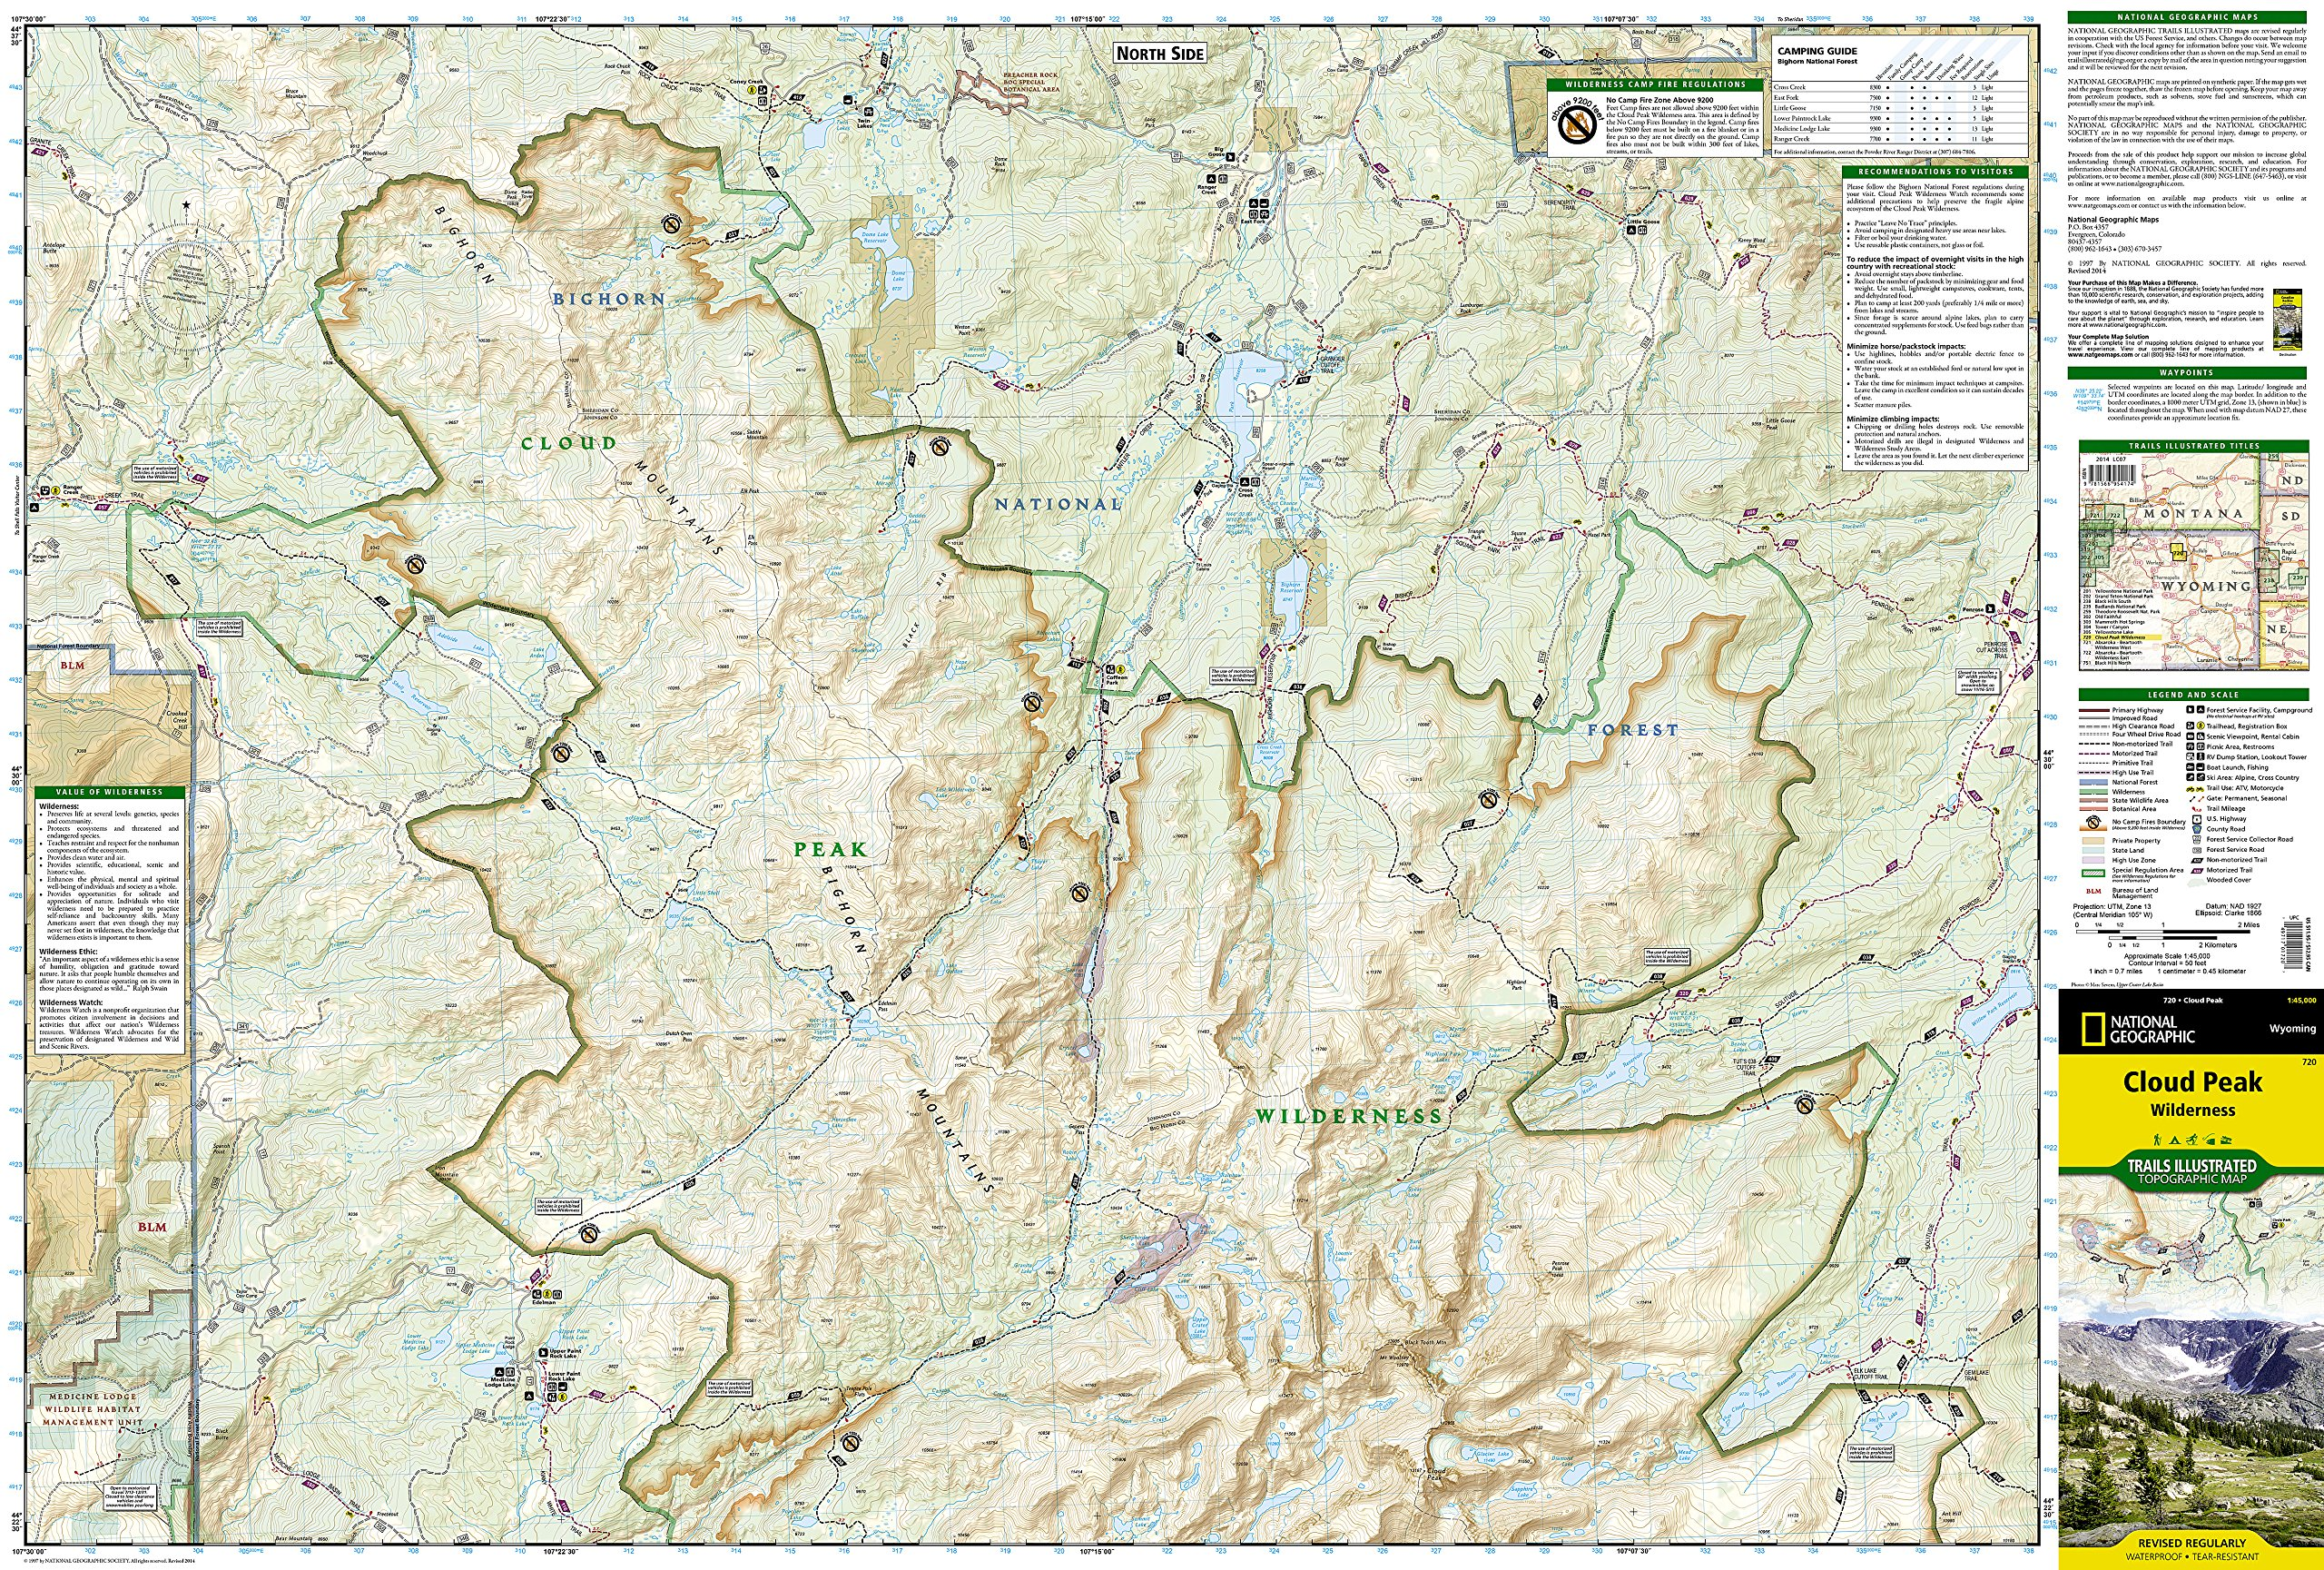 cloud peak wilderness national geographic trails illustrated map